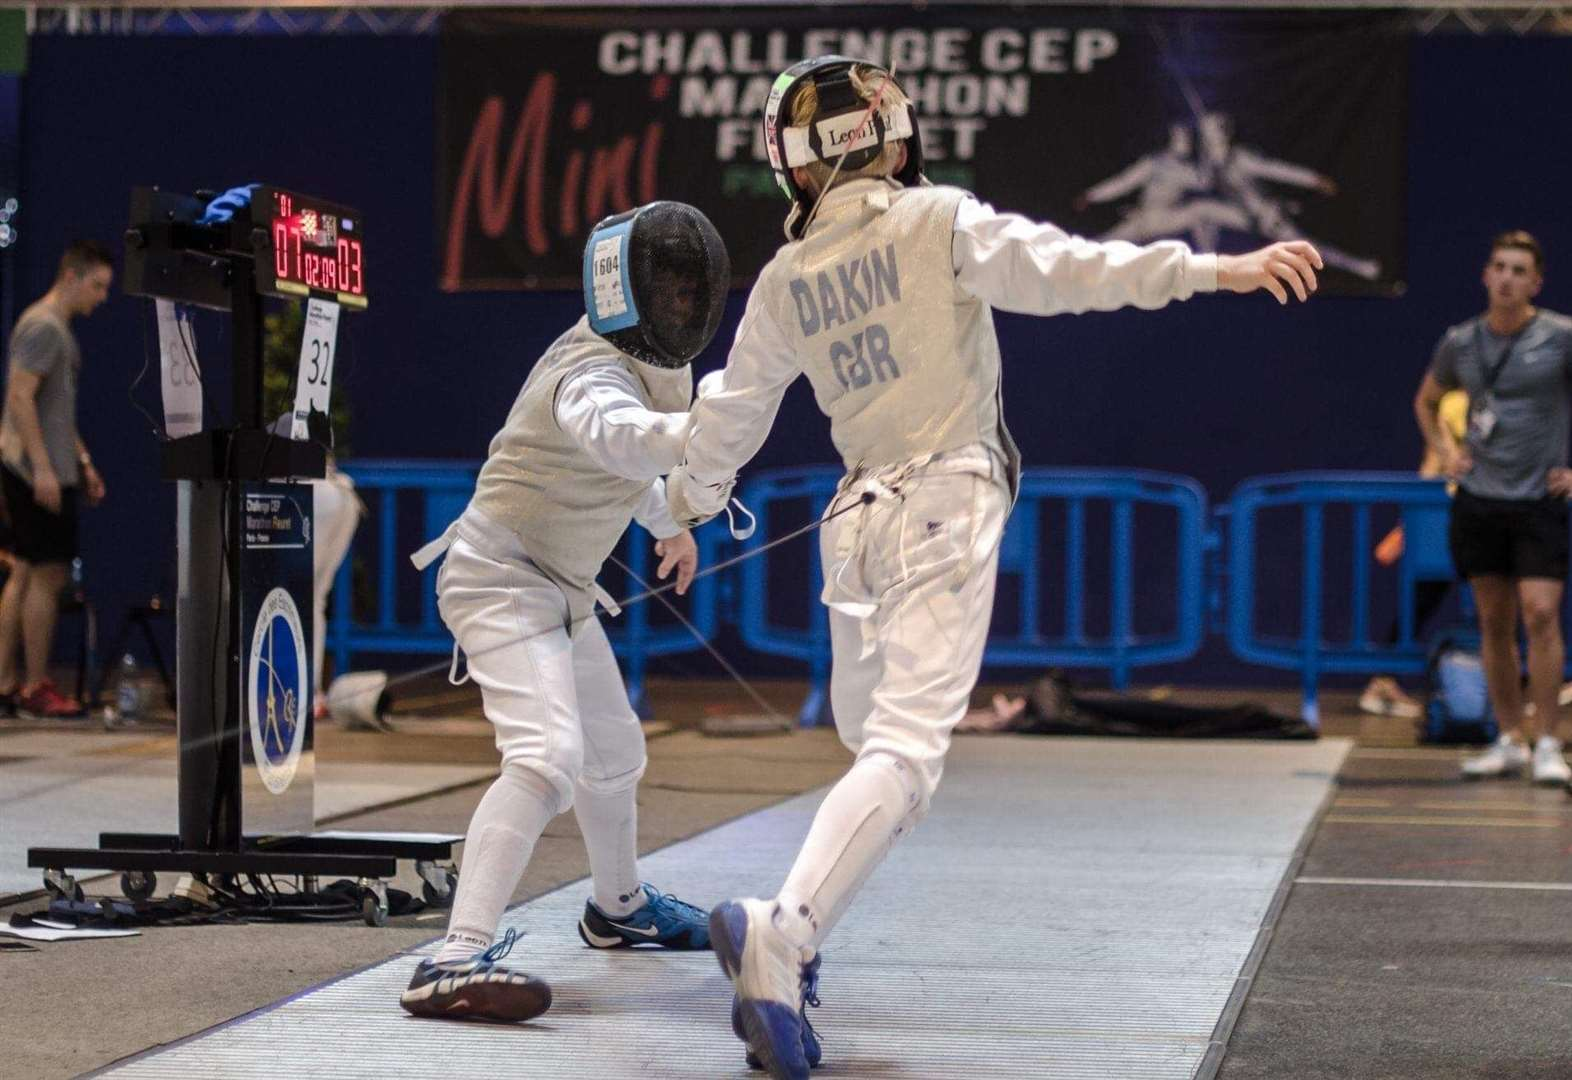 Fencer competes among the best in Paris